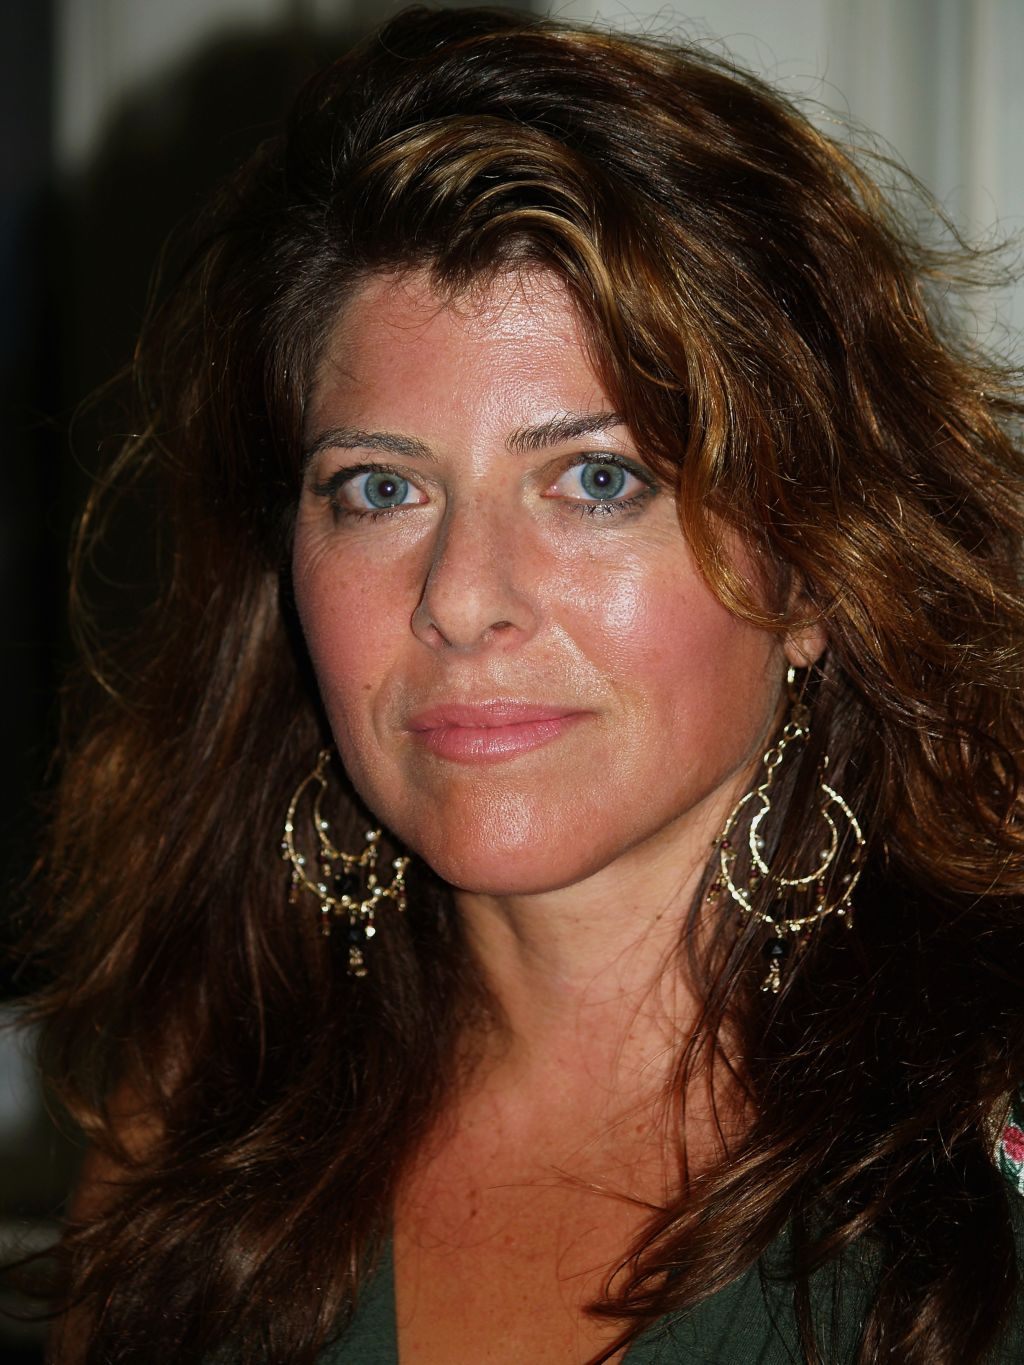 naomi wolf essay Read this english essay and over 88,000 other research documents response to naomi wolf what modern society dictates women should look like has had a great impact on commonplace women and how they feel.